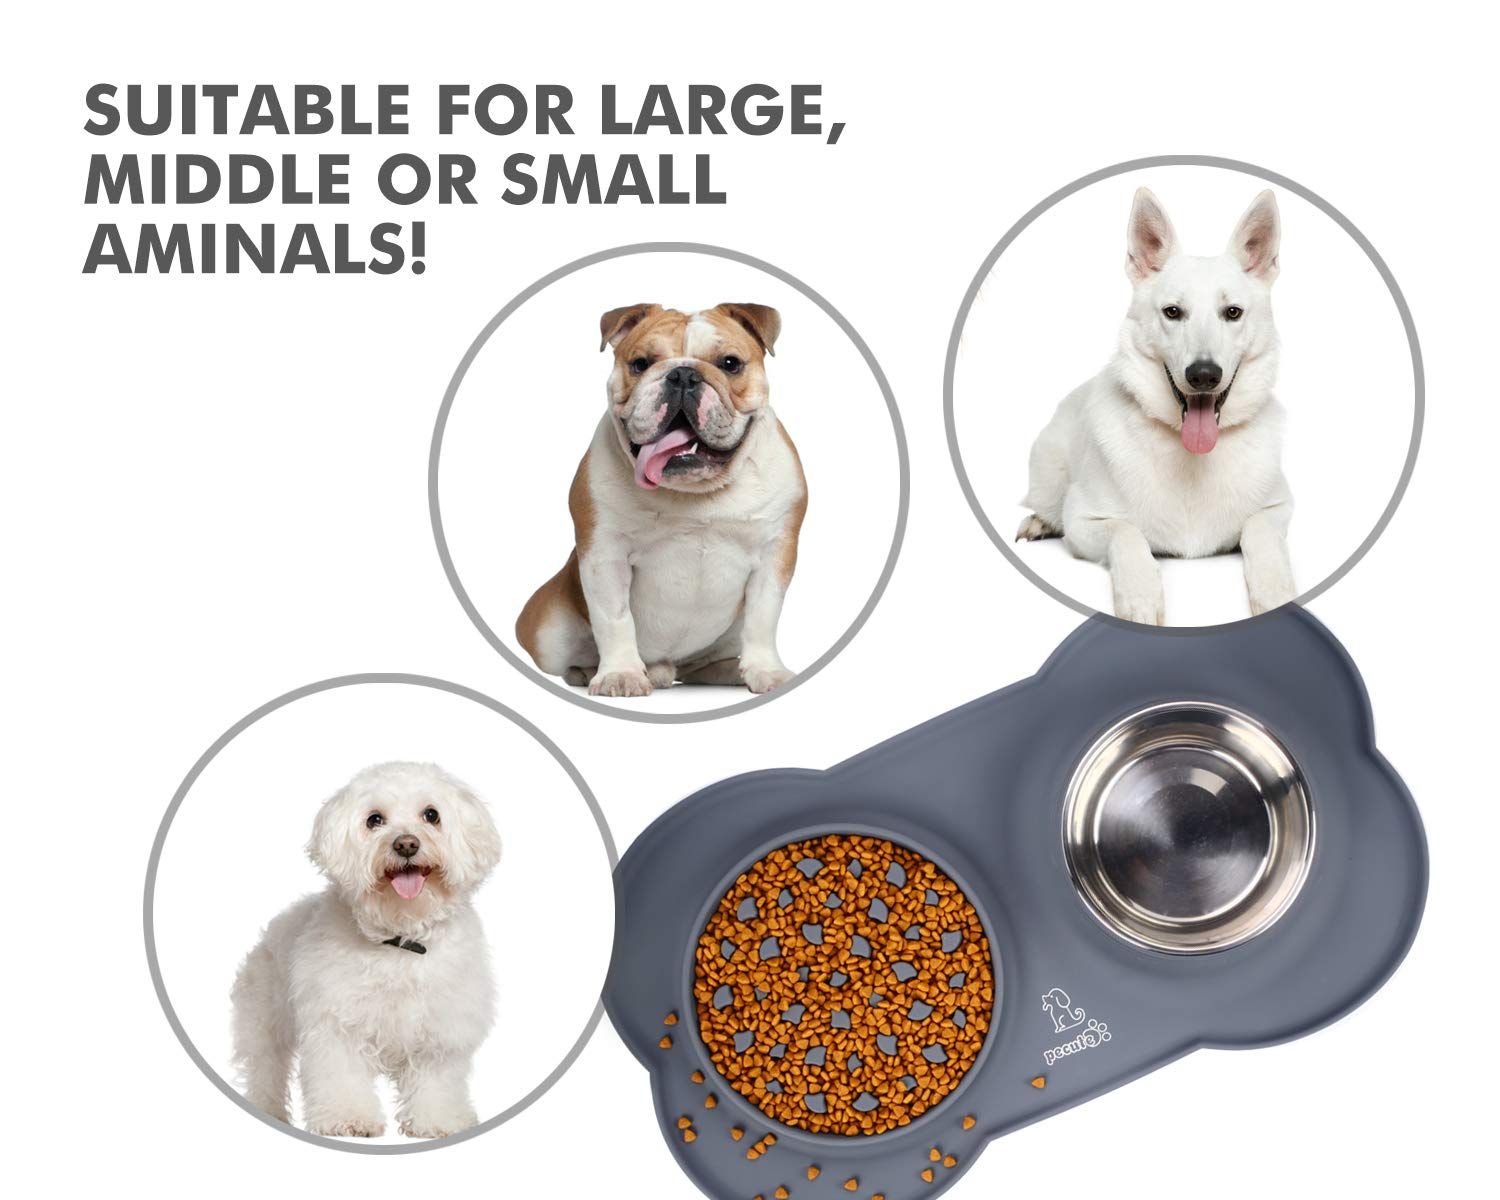 Pecute Dog Feeder Slow Eating Pet Bowl Eco-Friendly Durable Non-Toxic Preventing Choking Healthy Design Bowl with No Spill Non-Skid Silicone Mat Stainless Steel Pet Bowl for Dogs Cats and Pets